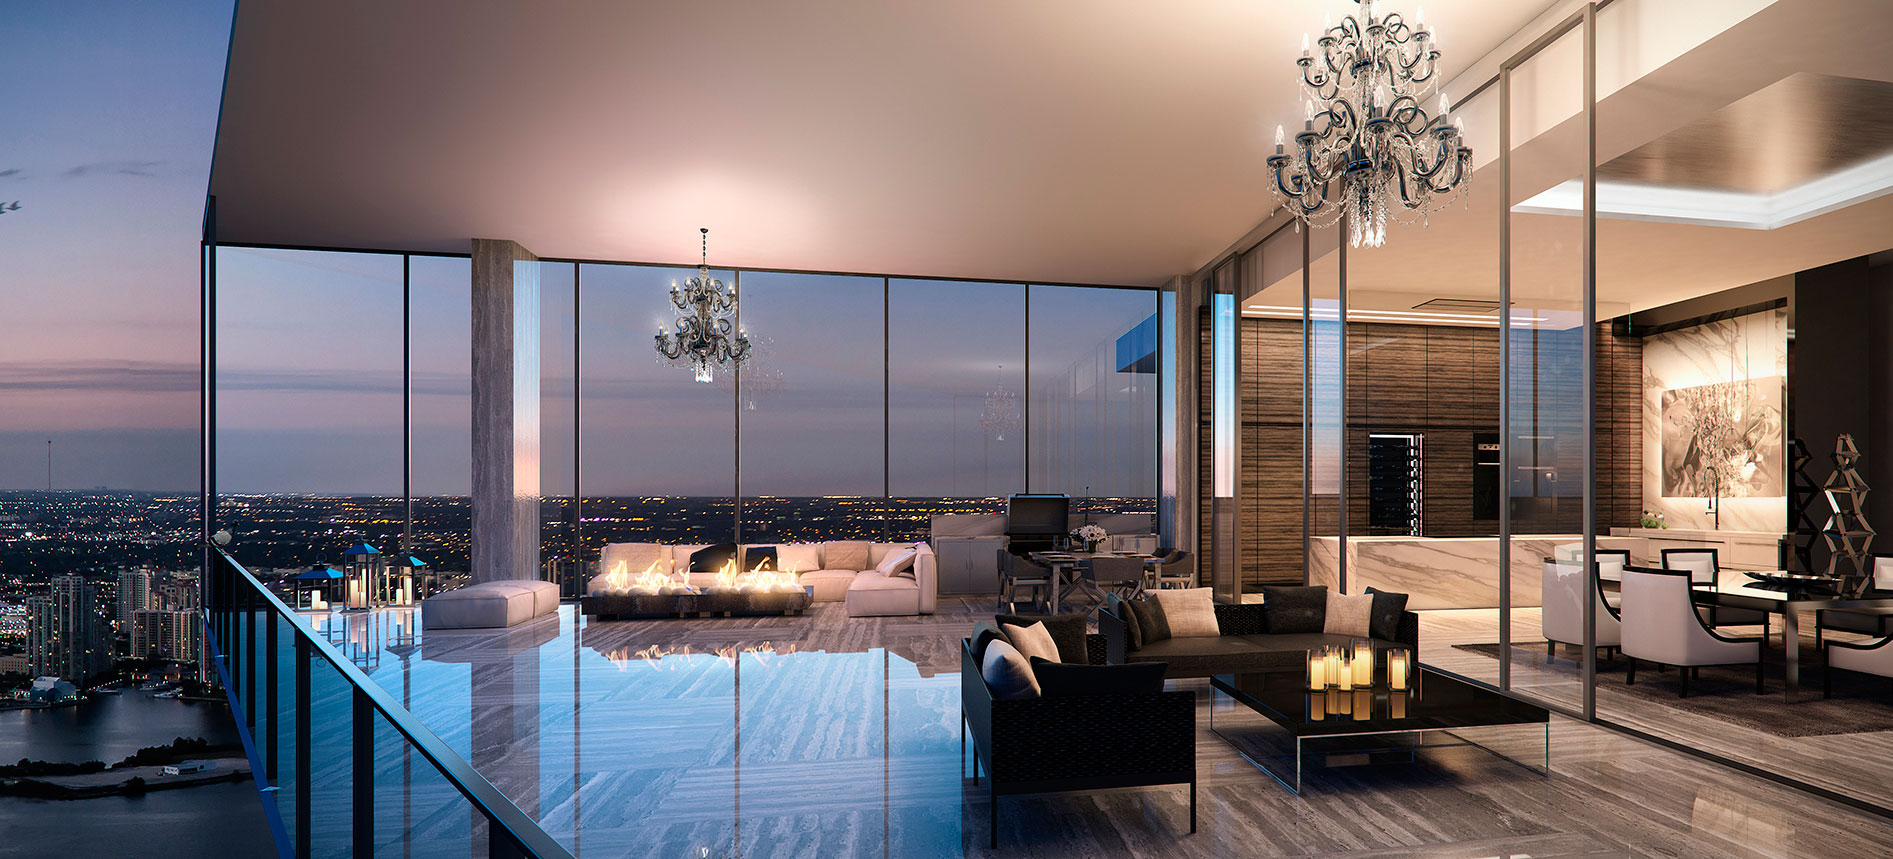 7 luxury condos in florida with expansive balconies for Luxury balcony design